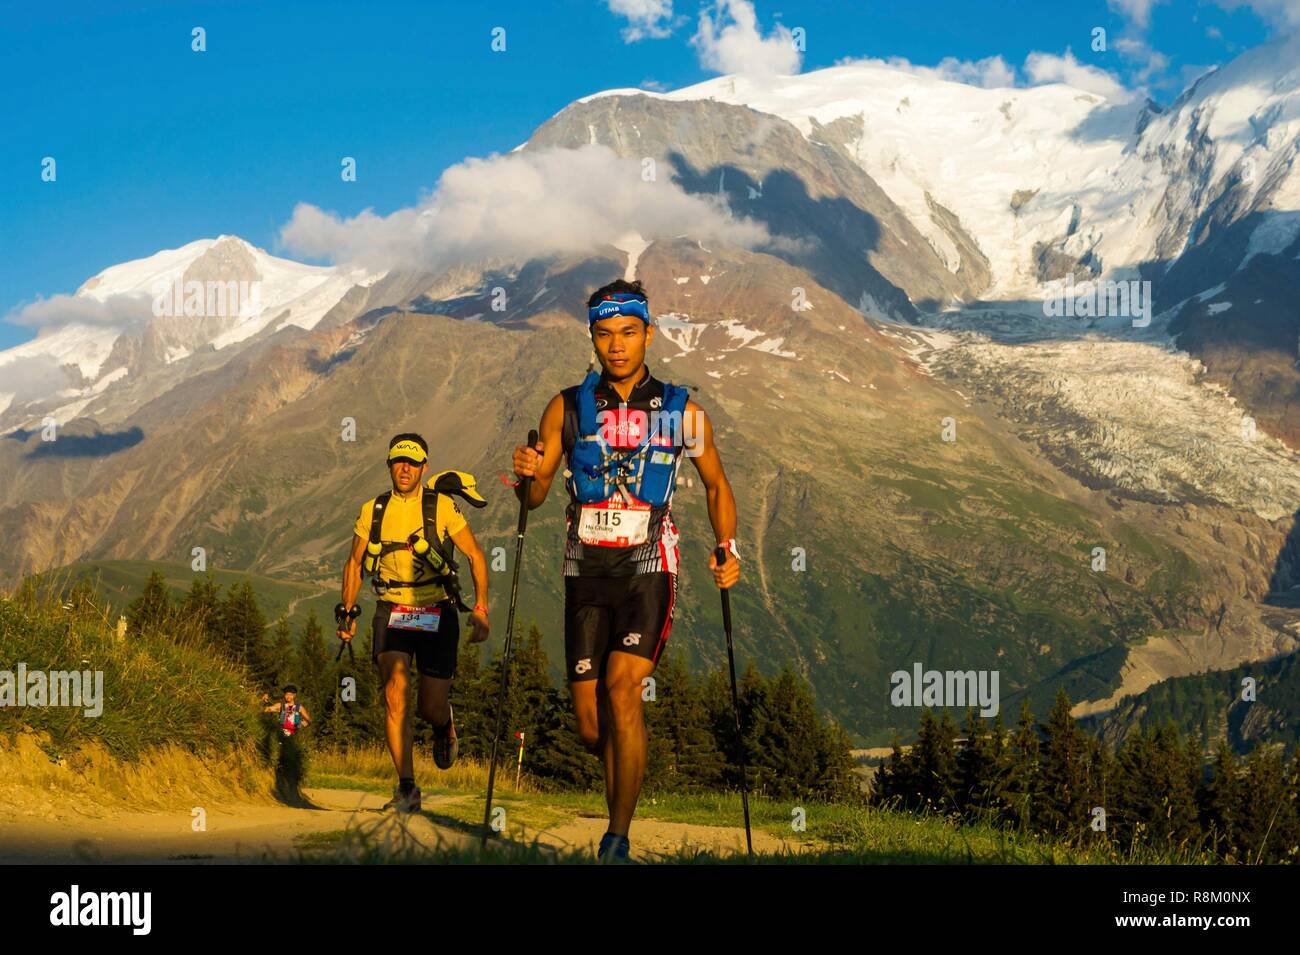 France, Haute-Savoie, St-Gervais-les-Bains, trail race of UTMB, crossing of the col de Voza, at the foot of the Aiguille du Goûter and Mt Blanc in the back and Mont Blanc du Tacul on the left - Stock Image